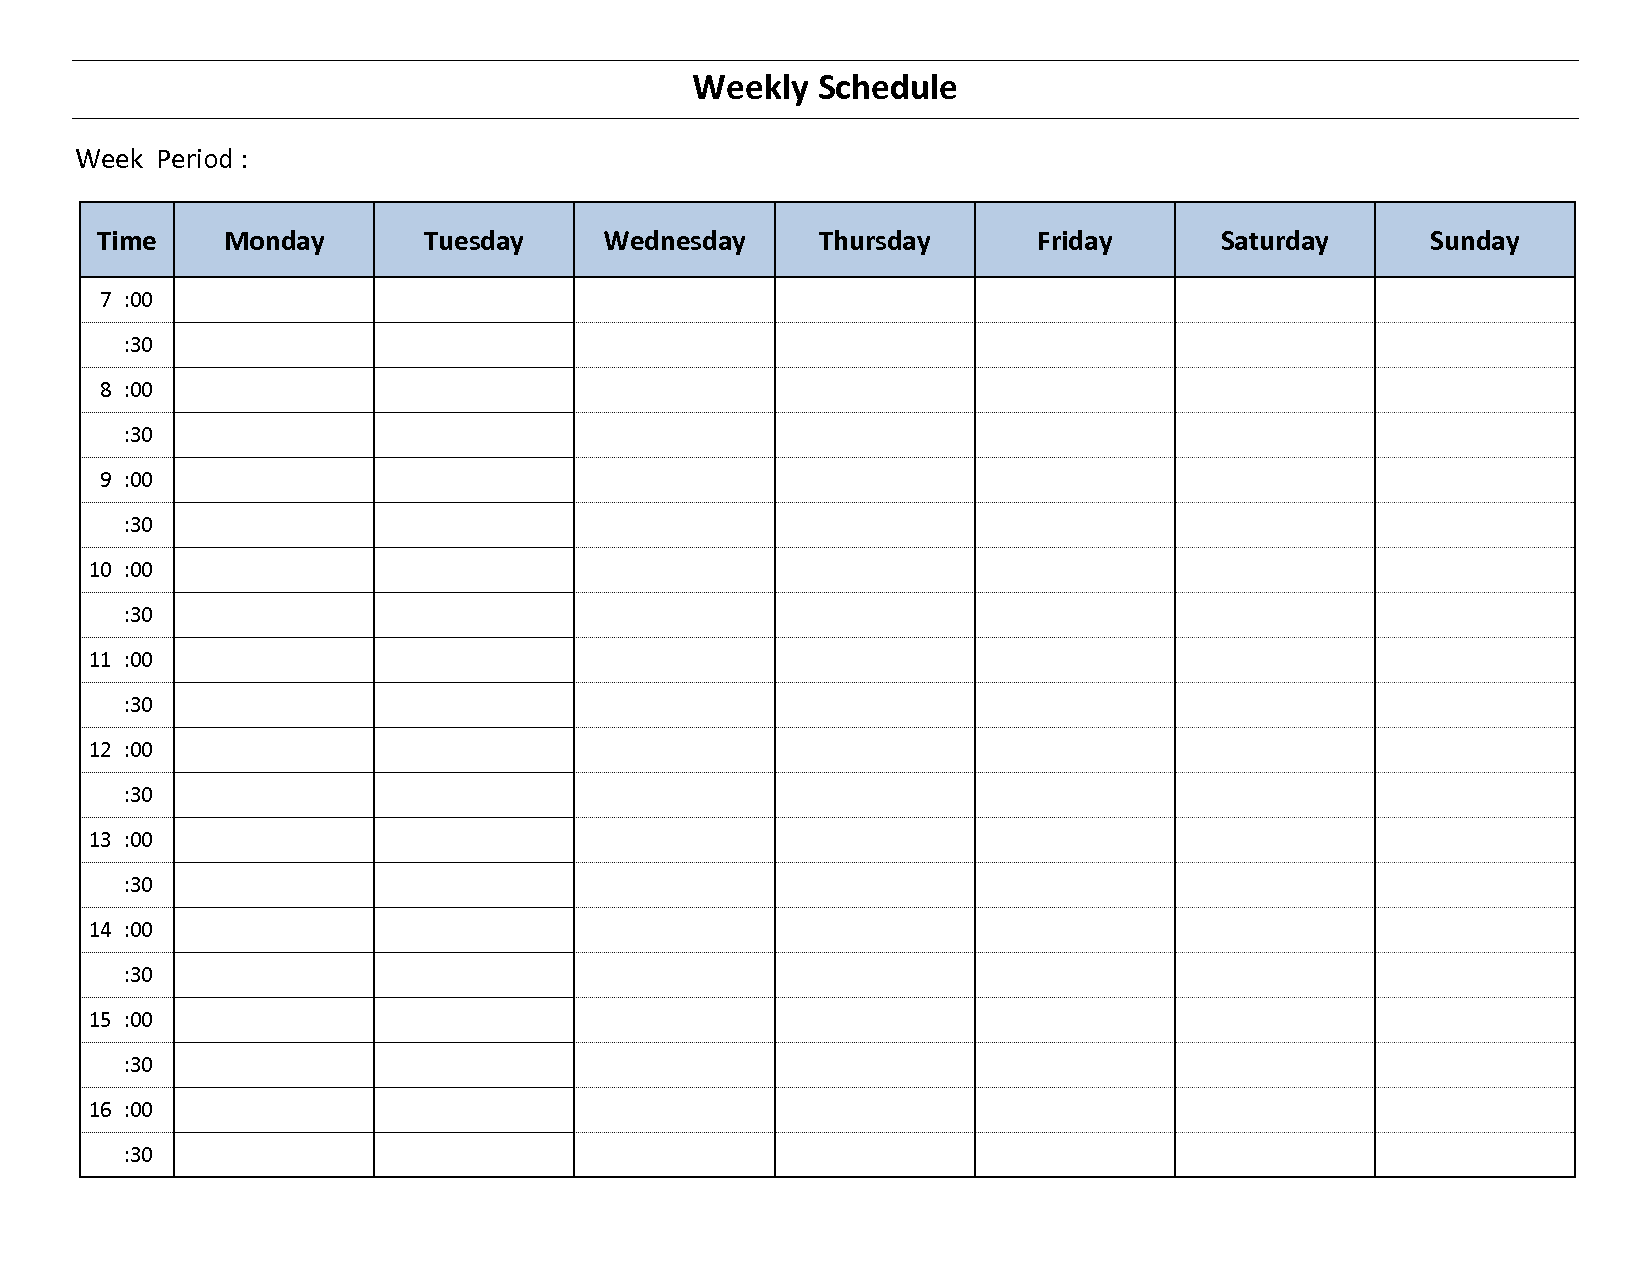 Ridiculous image pertaining to weekly schedule printable